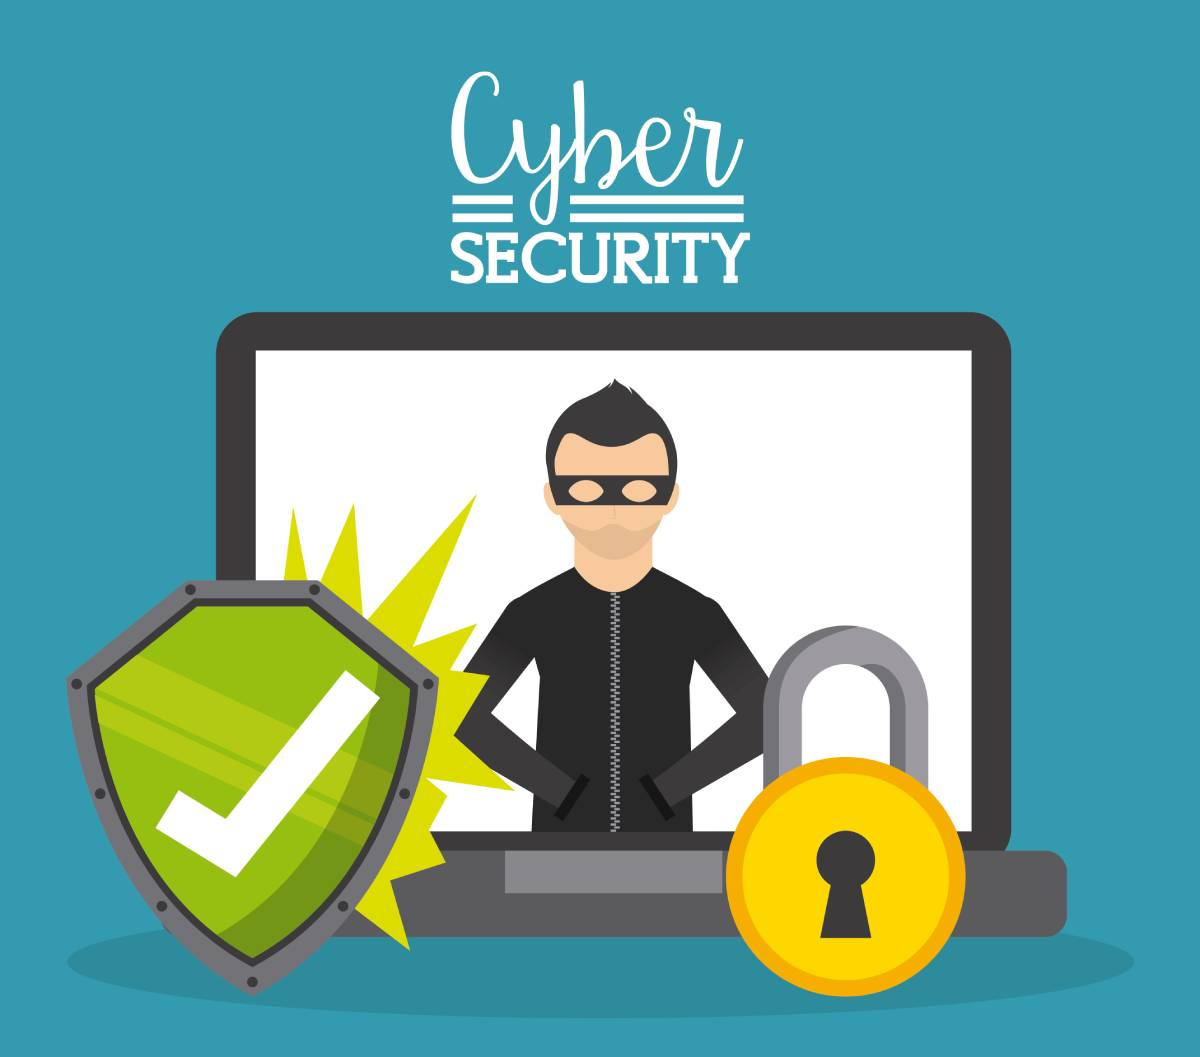 Cybersecurity illustration